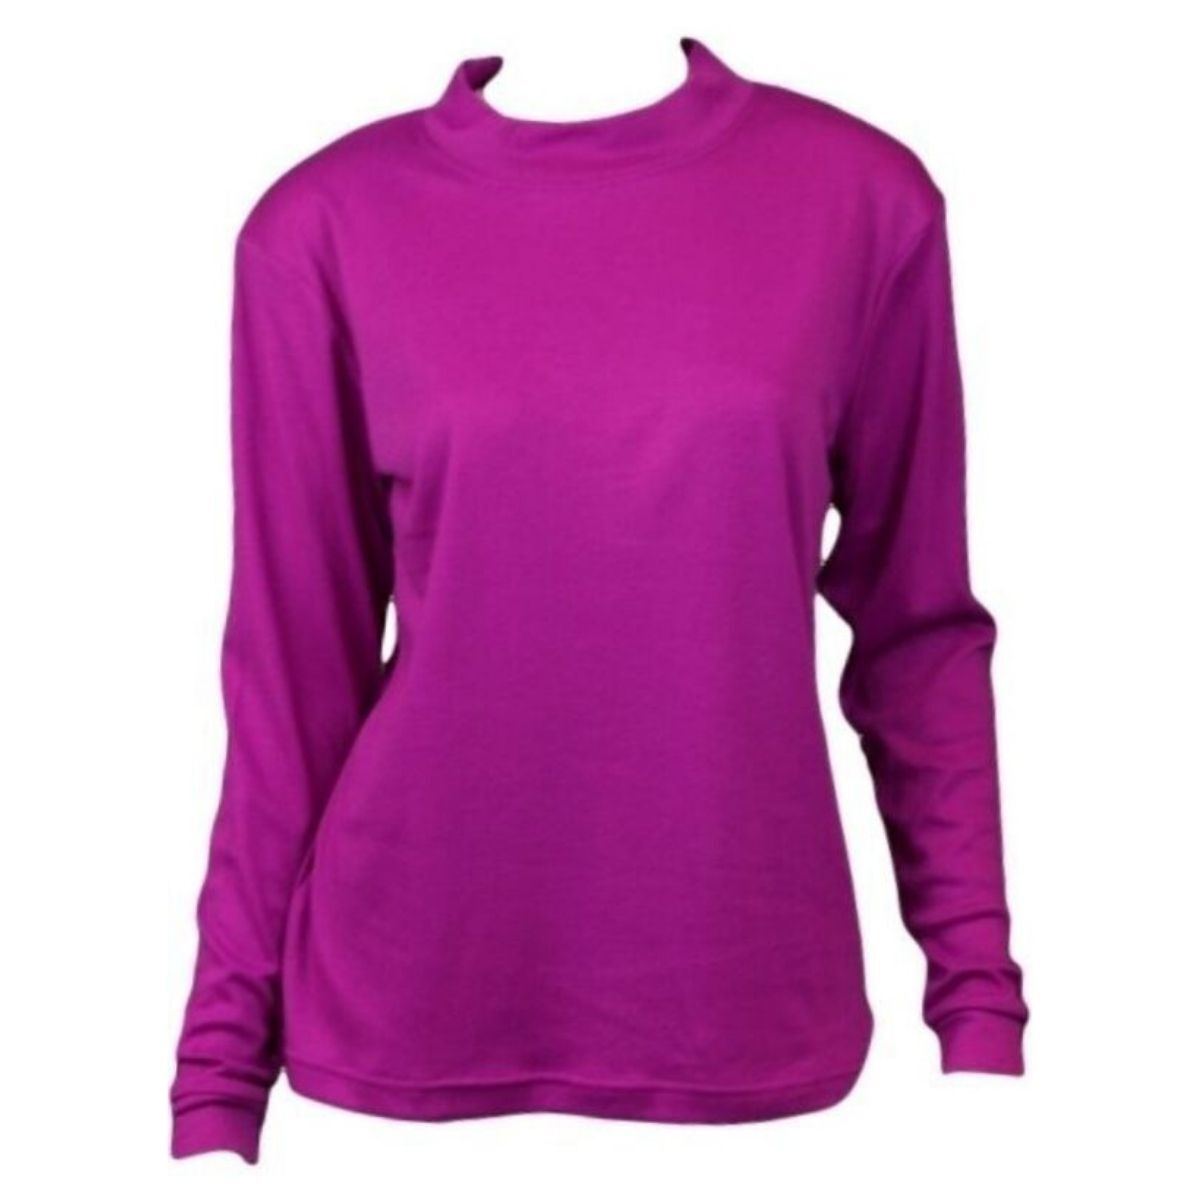 NEW-Women-039-s-Cotton-Skivvy-Long-Sleeve-Top-High-Neck-Basic-Plain-Core thumbnail 14